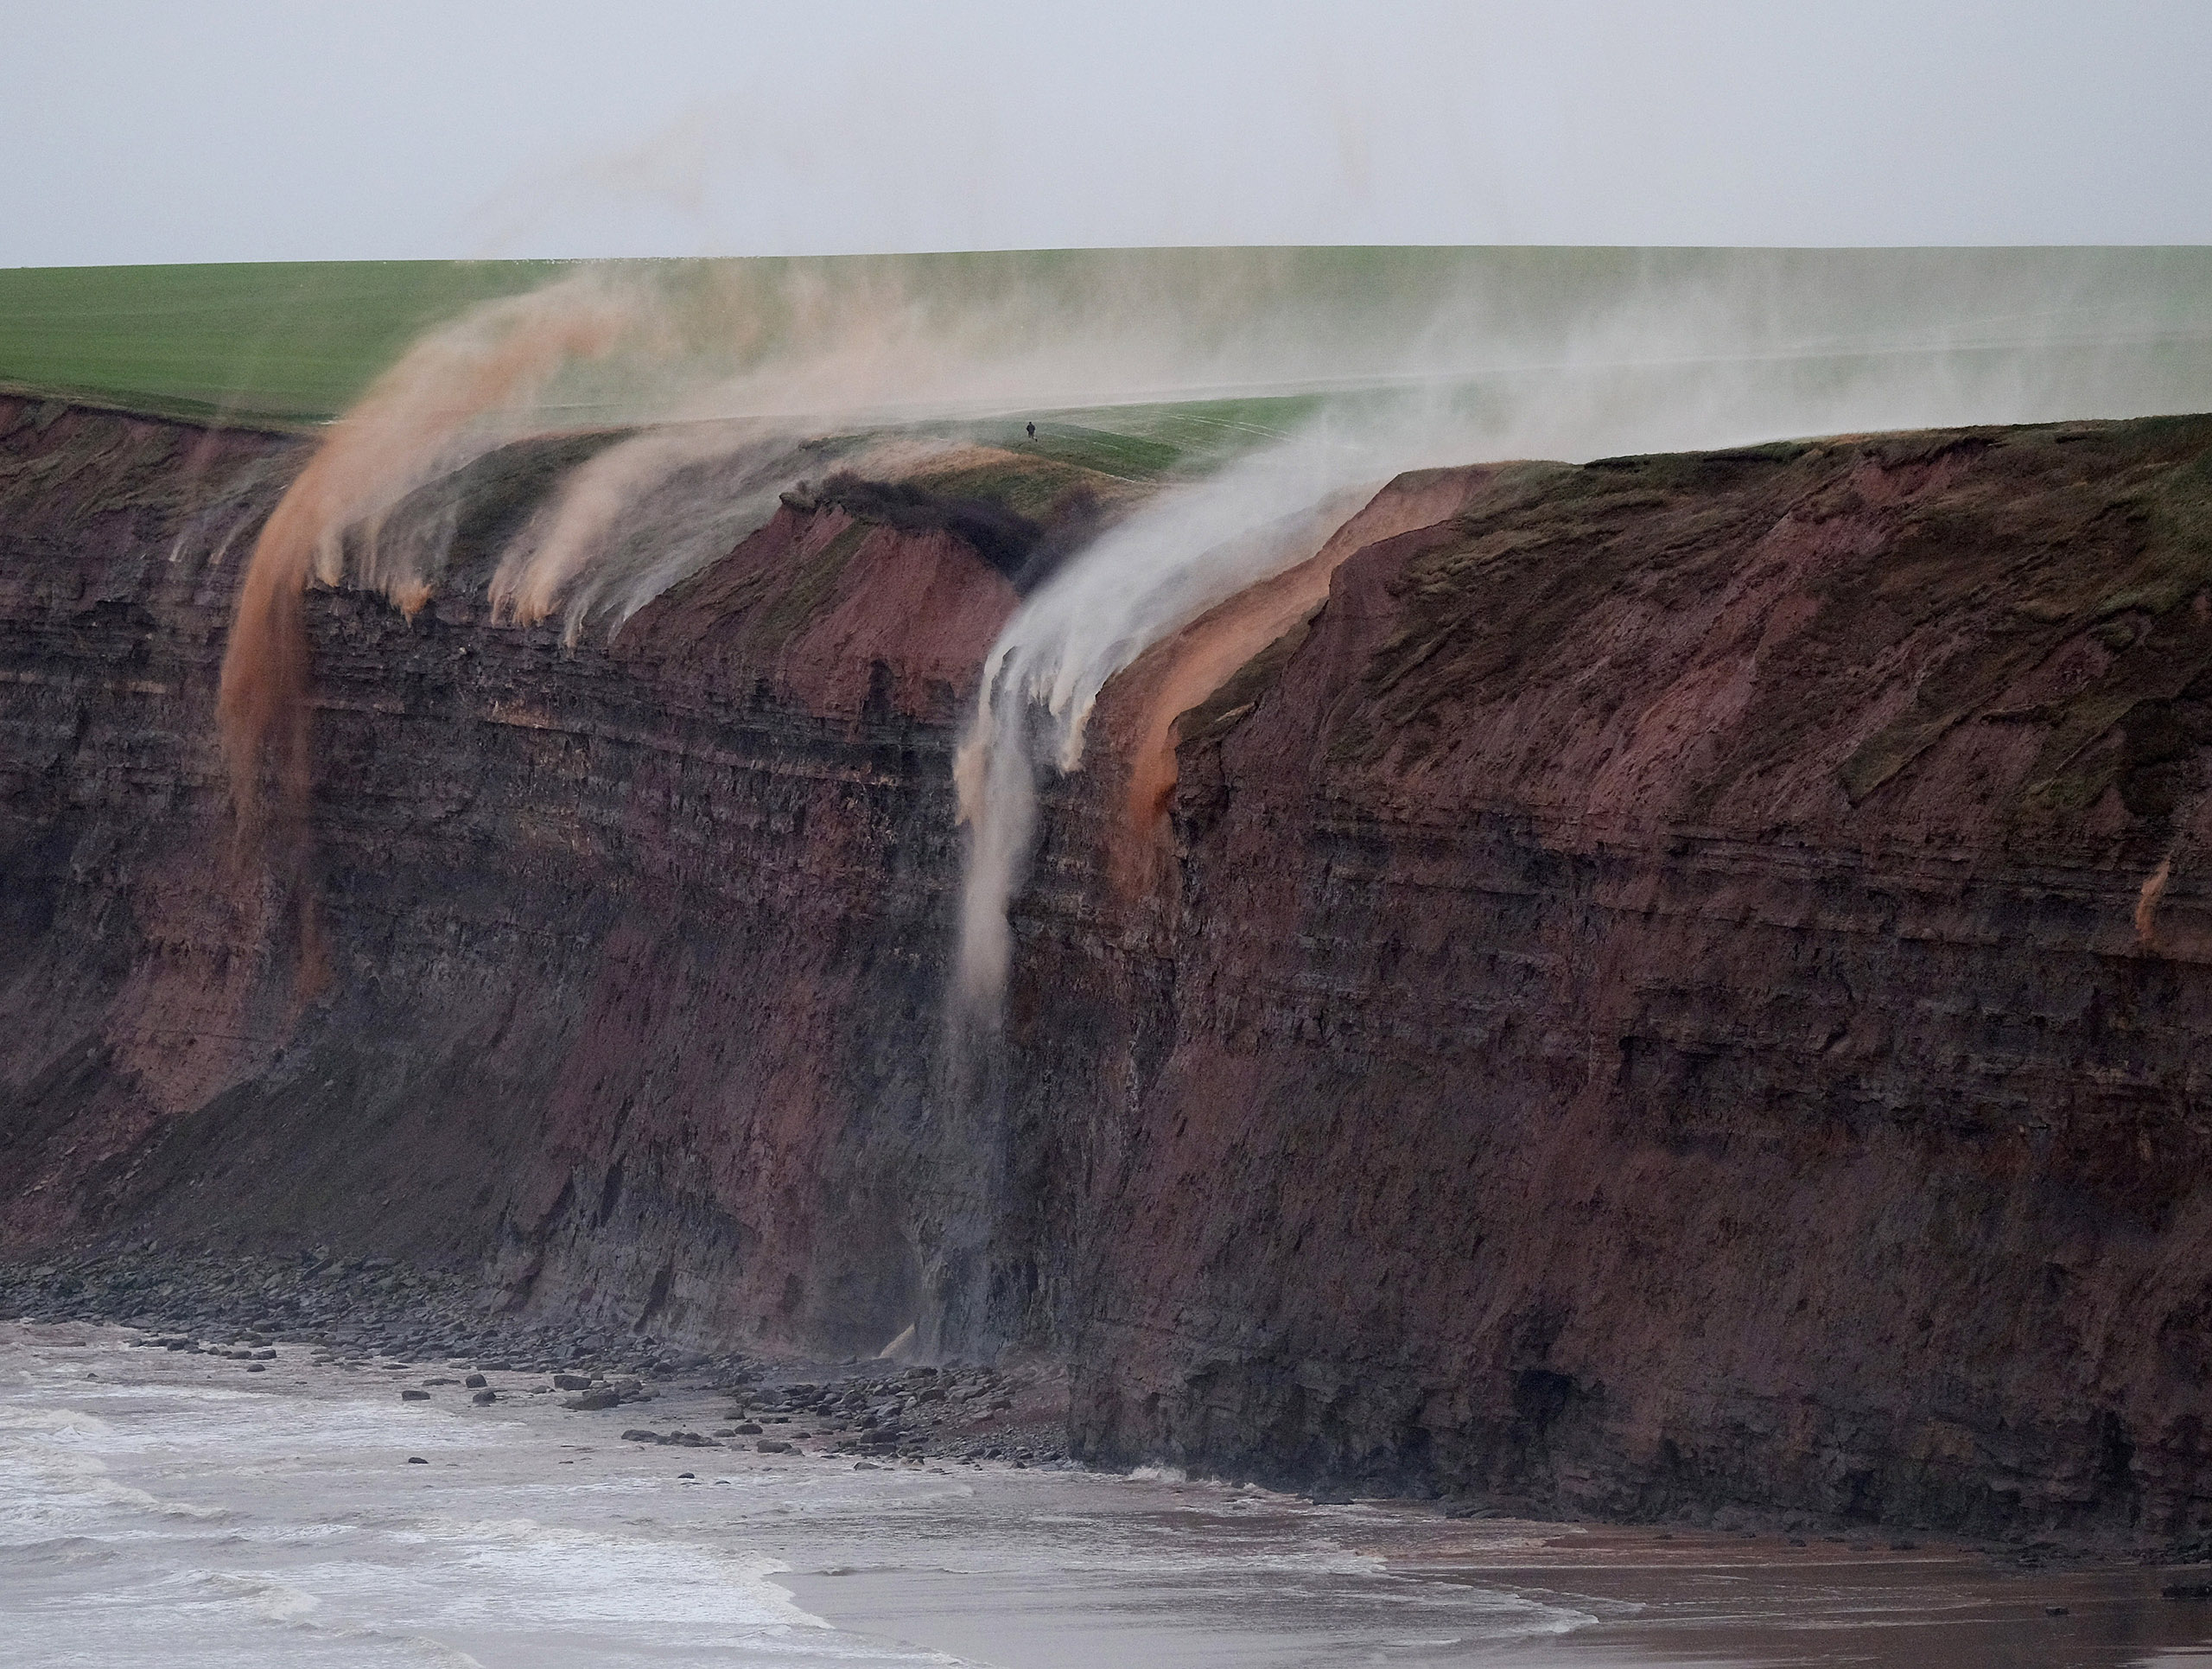 High winds blowing off the North Sea force rainwater from fields back over the cliff edge at Huntcliff in Saltburn-by-the-Sea, England, on Jan. 14, 2016.